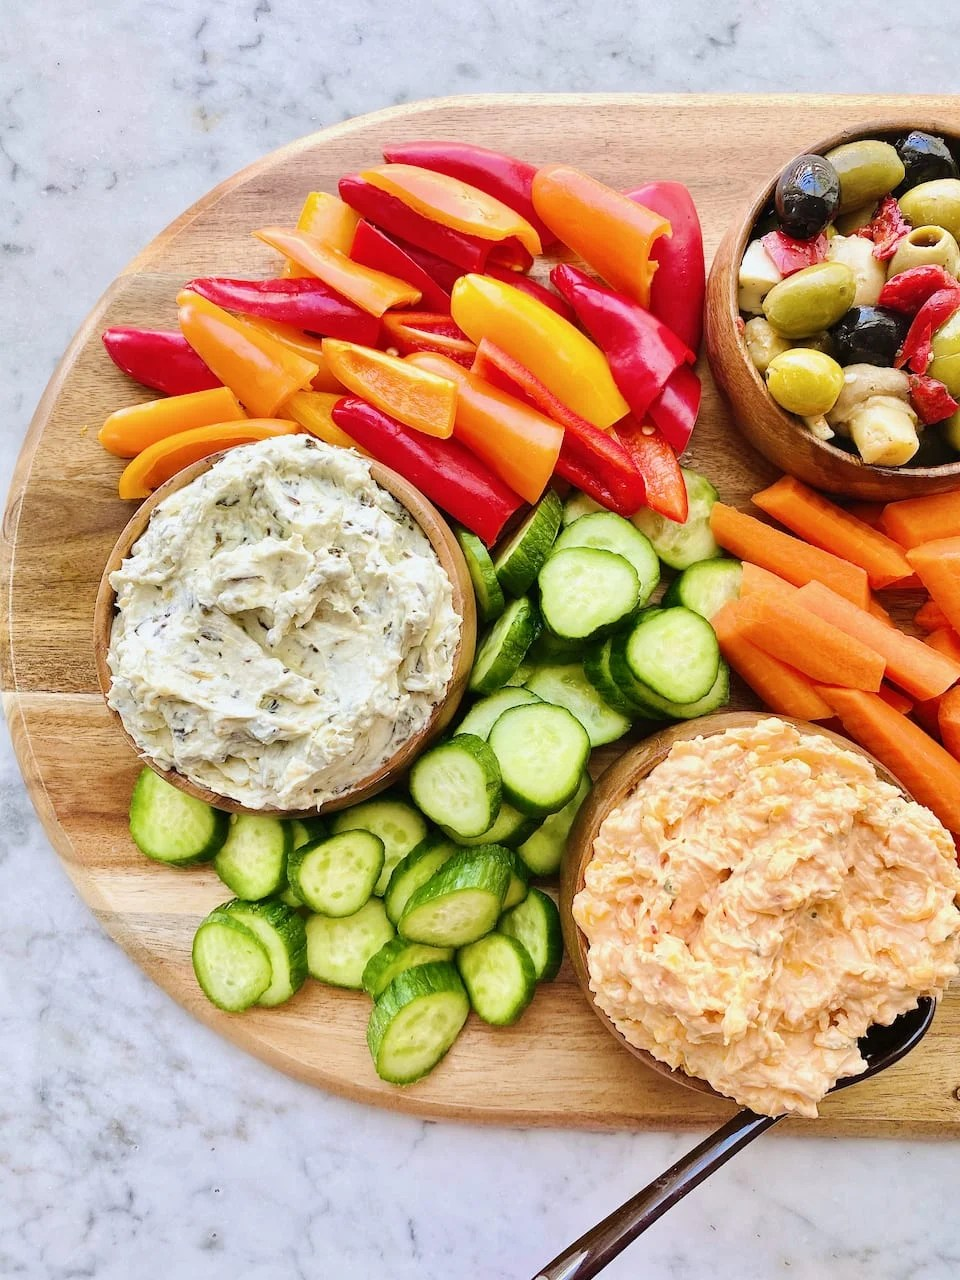 pizza wooden board with red and orange pepper, cucumbers, pimento cheese and veggies